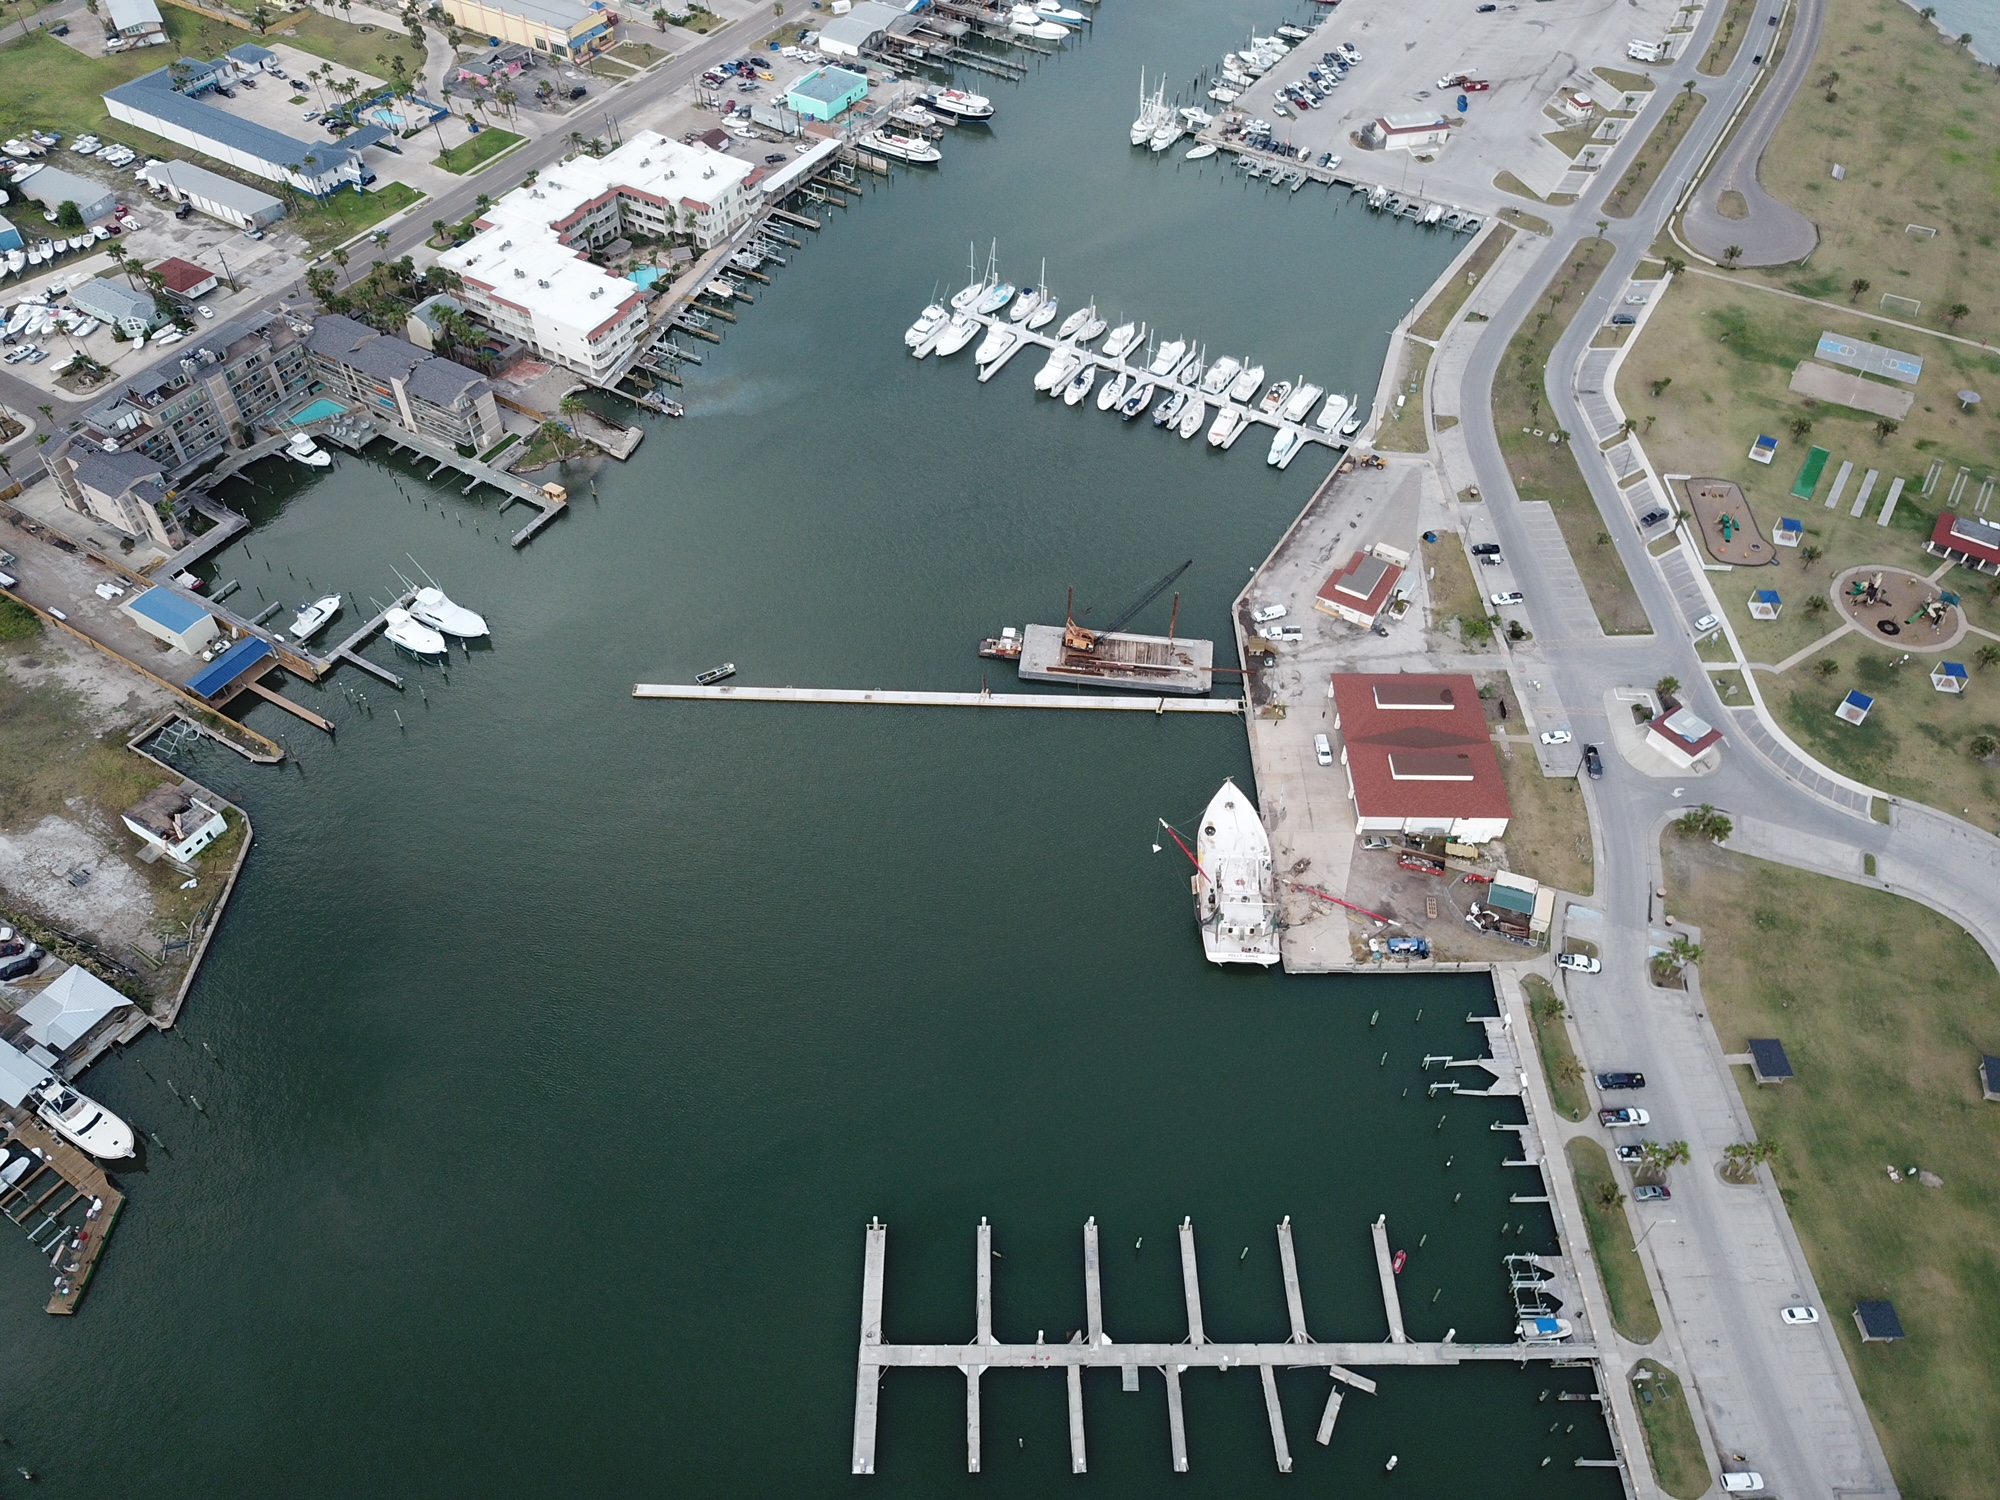 City of Aransas Marina